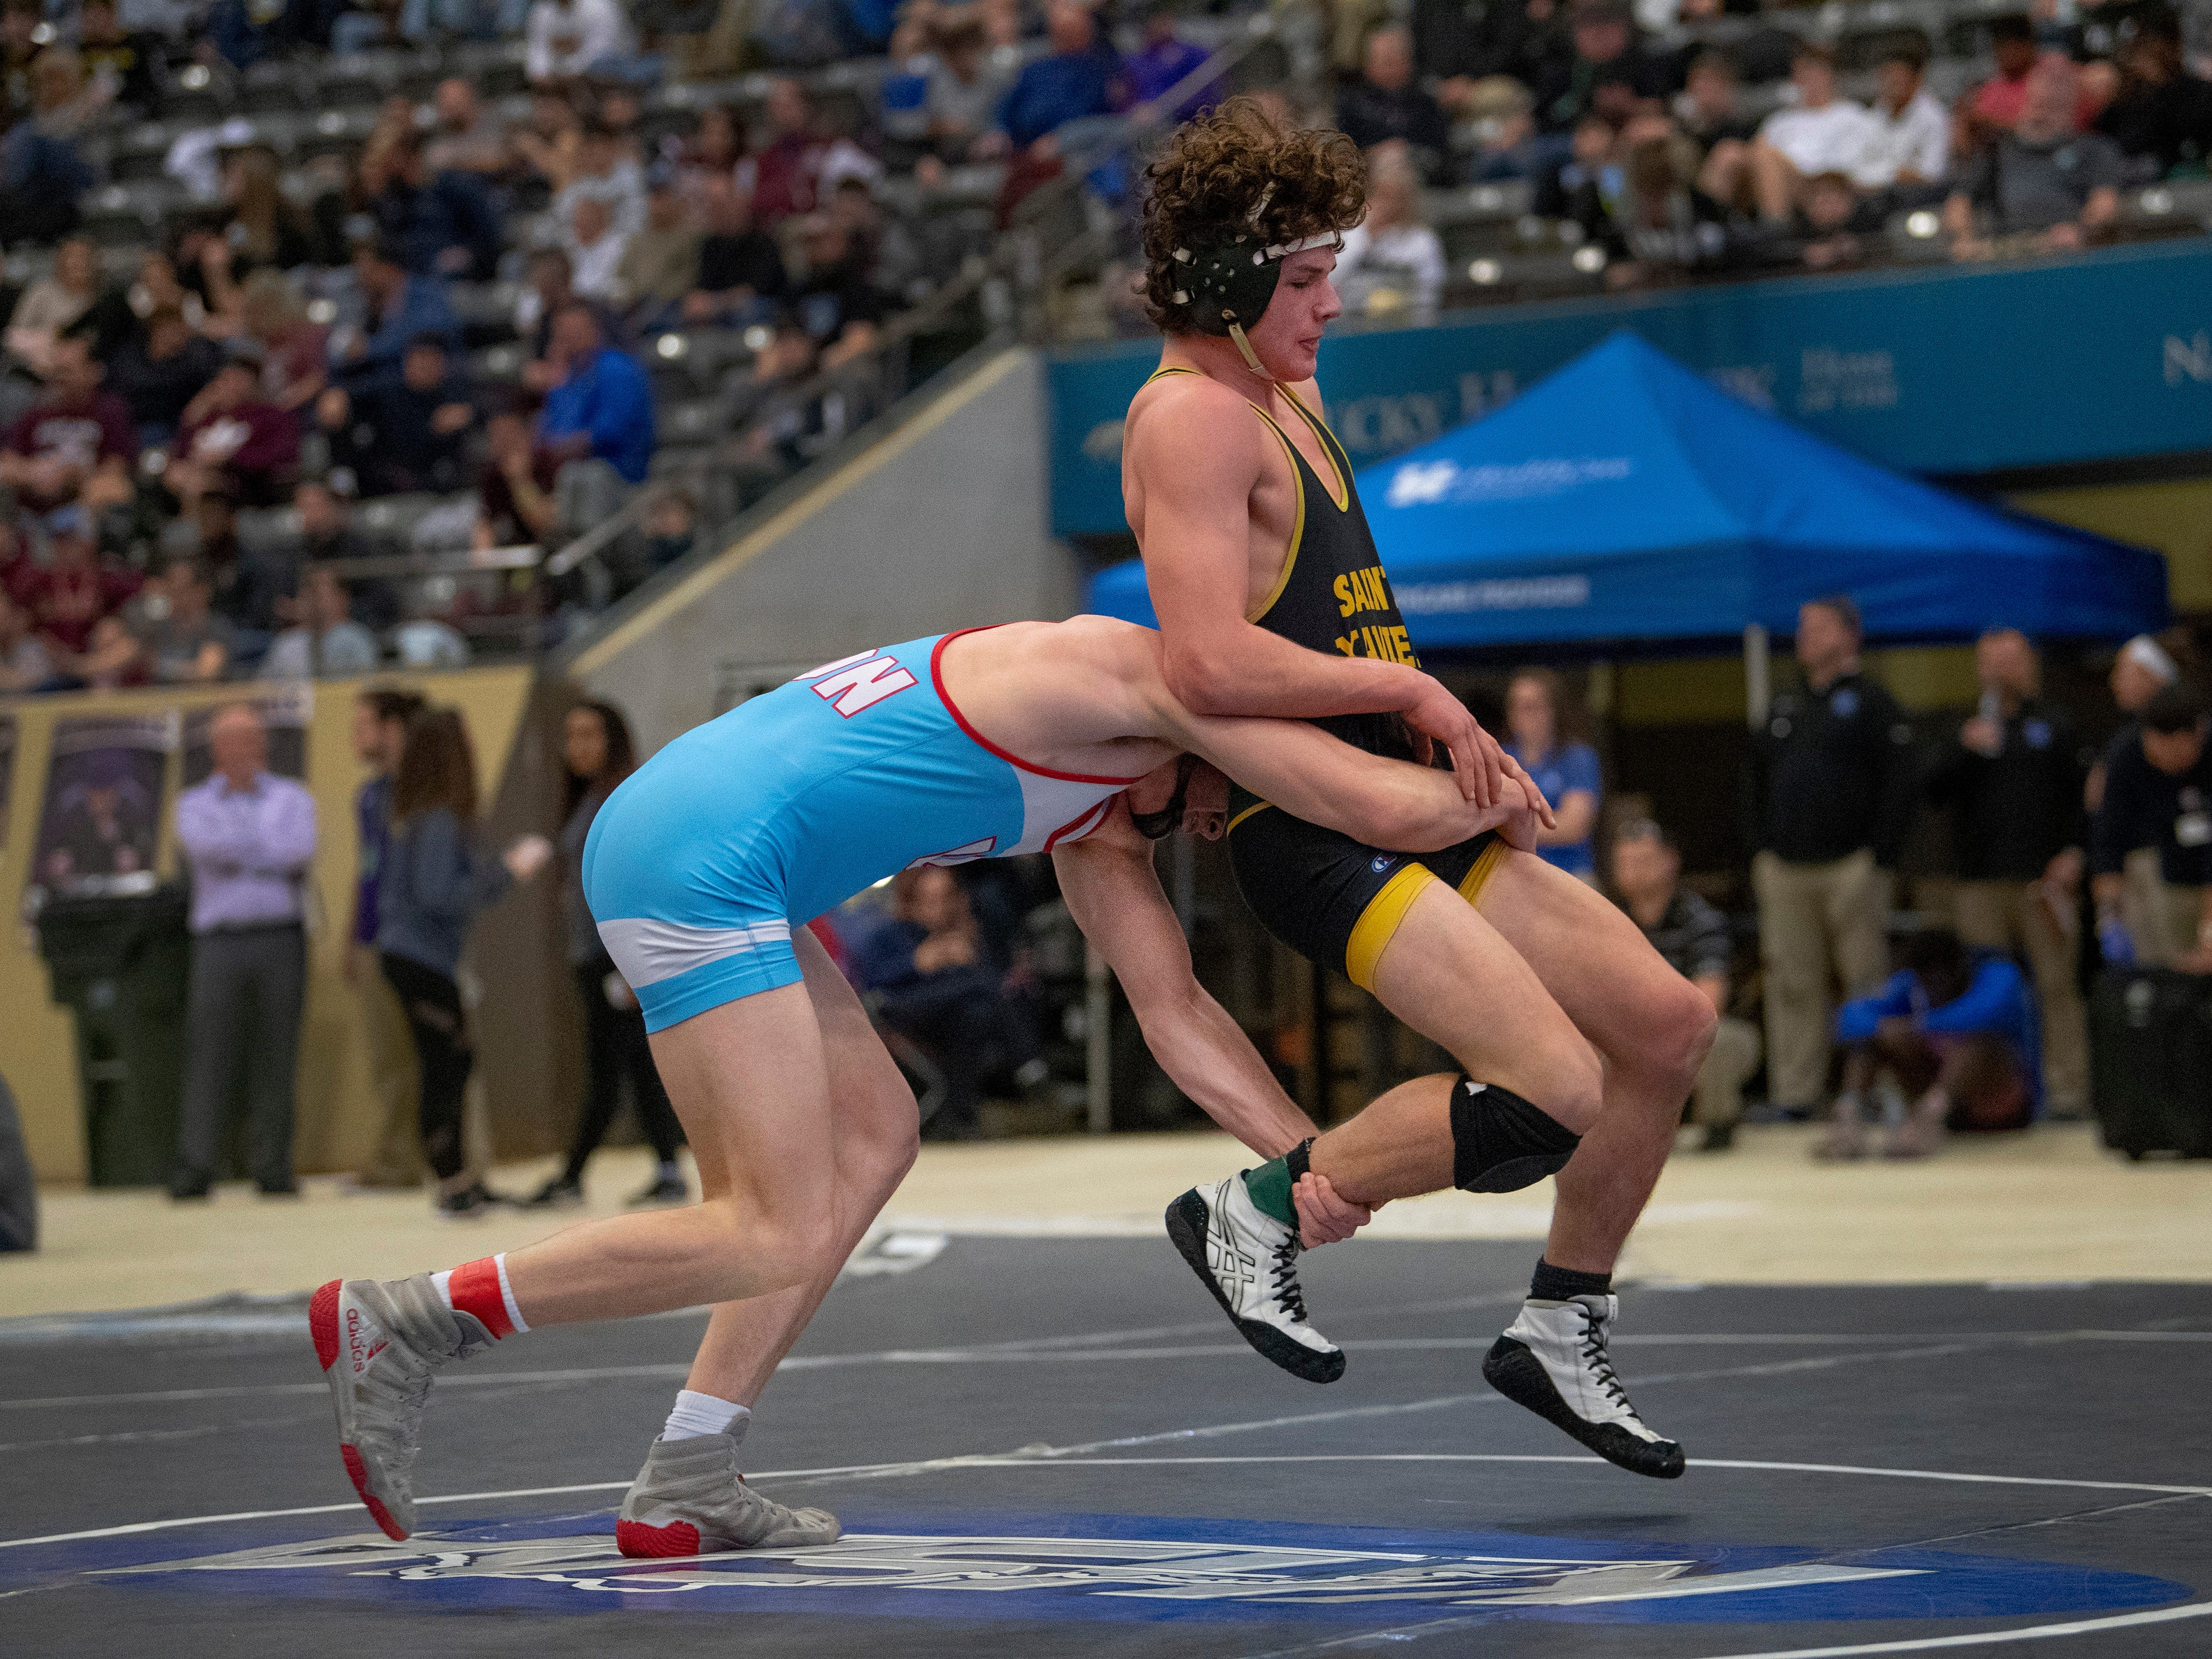 Union County's Dalton Russelburg, left, takes down  Campbell County's Thomas Ketchen-Cart in the 152-pound semifinal match at the KHSAA State Wrestling Championships at the Alltech Arena in Lexington, Ky., Saturday afternoon. Russeslburg won the match by a 7-3 decision and then went on to win the state championship with a 10-4 decision.